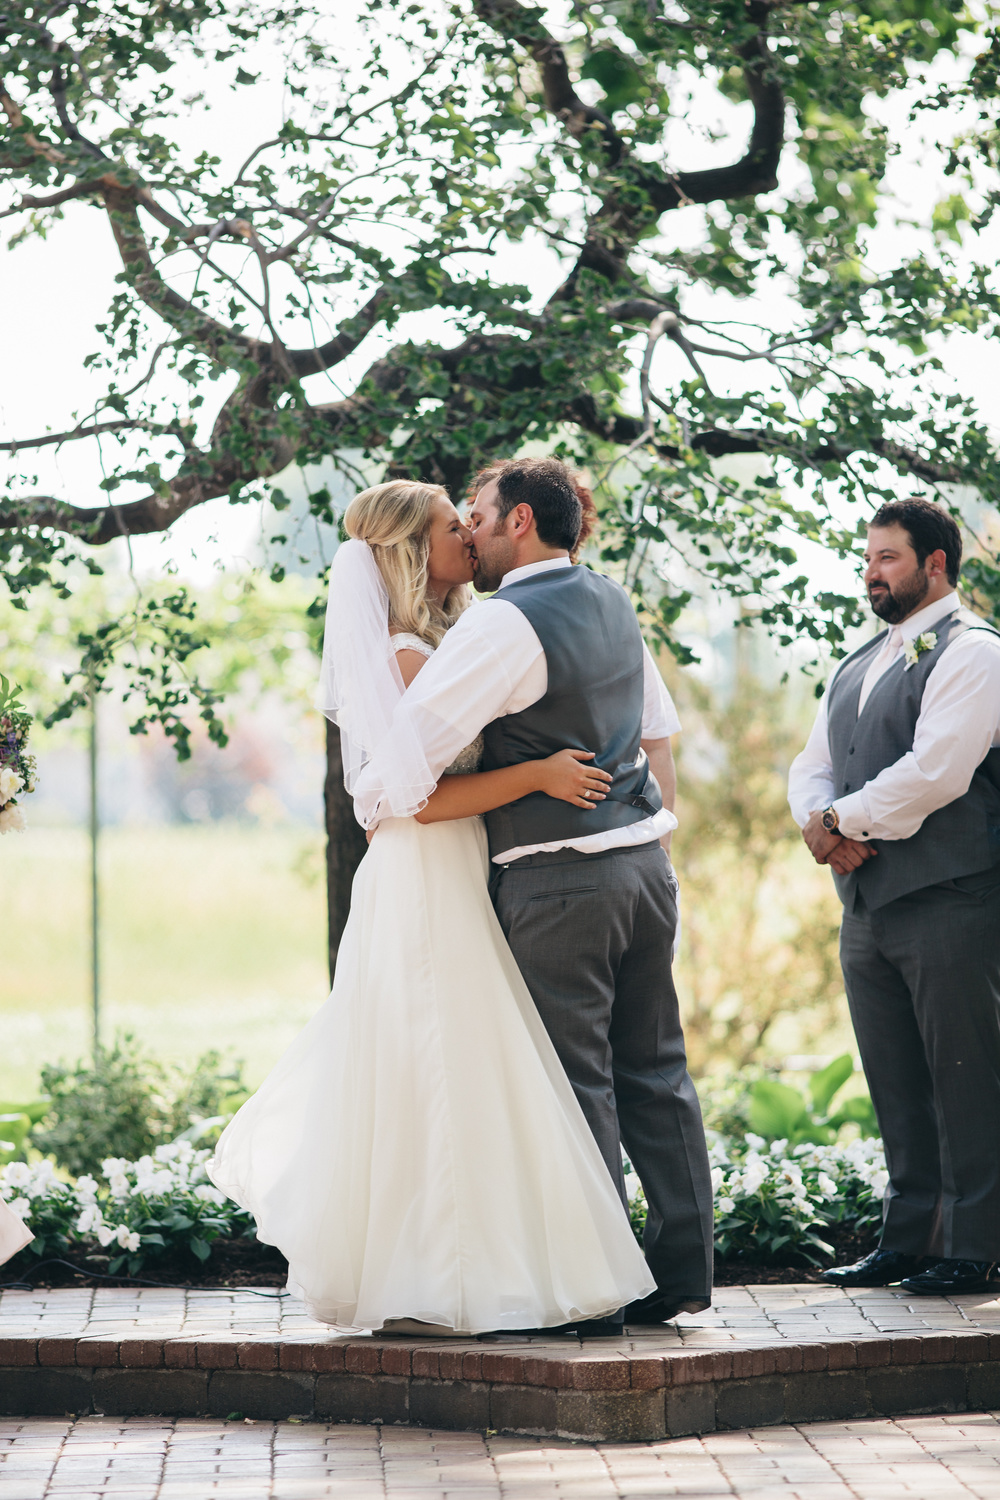 First kiss between bride and groom during outdoor ceremony.